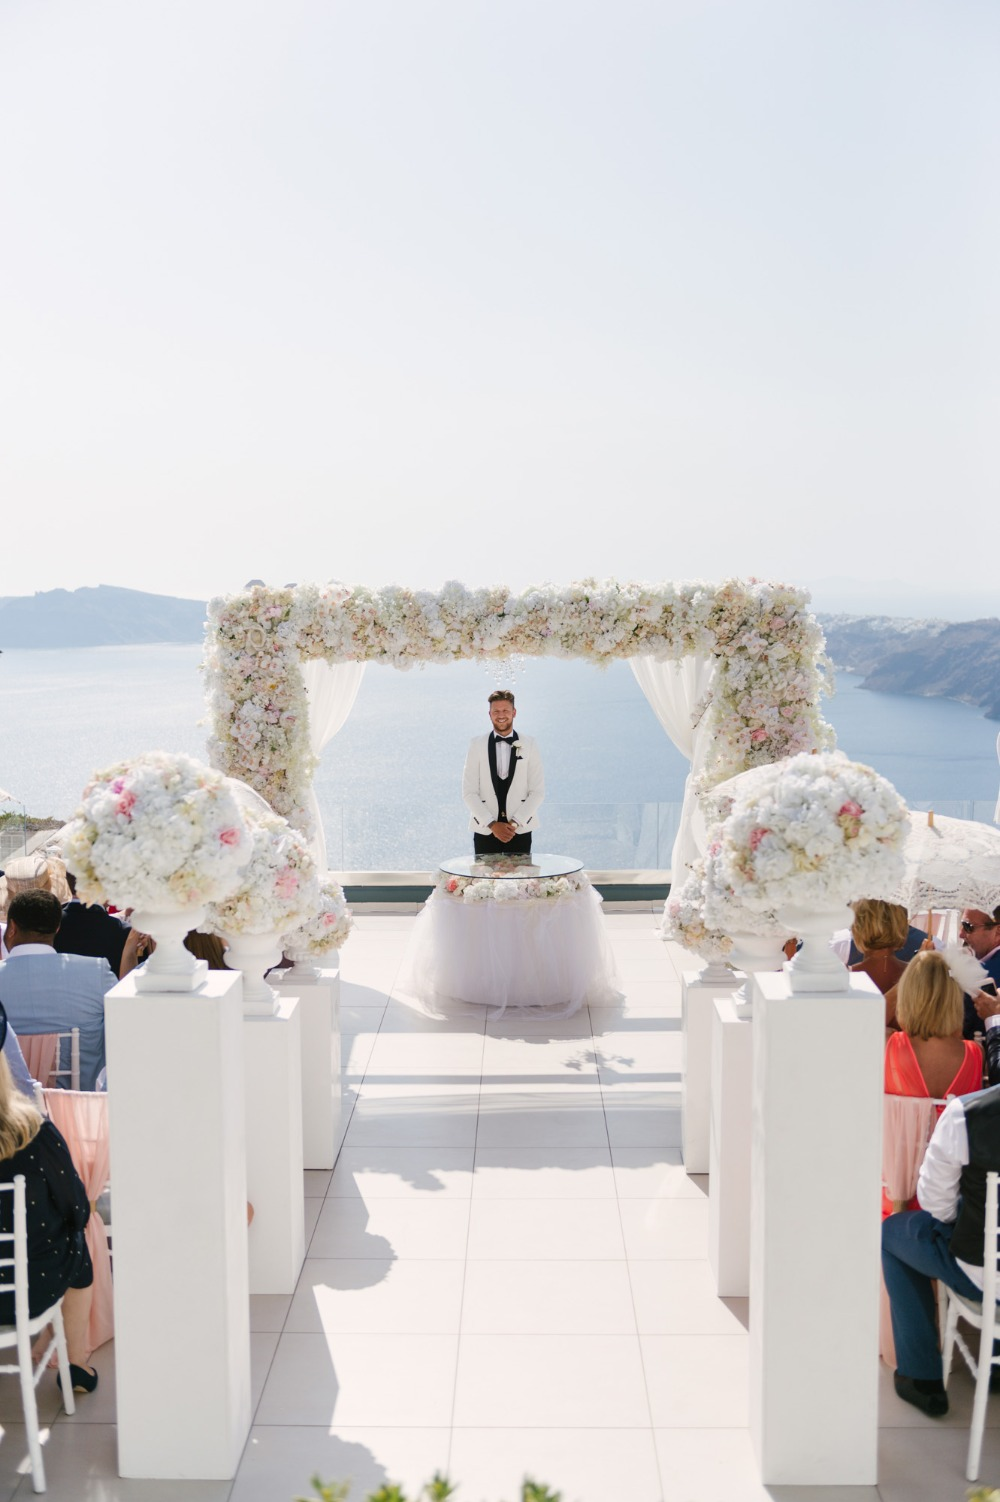 wedding ceremony in Greece